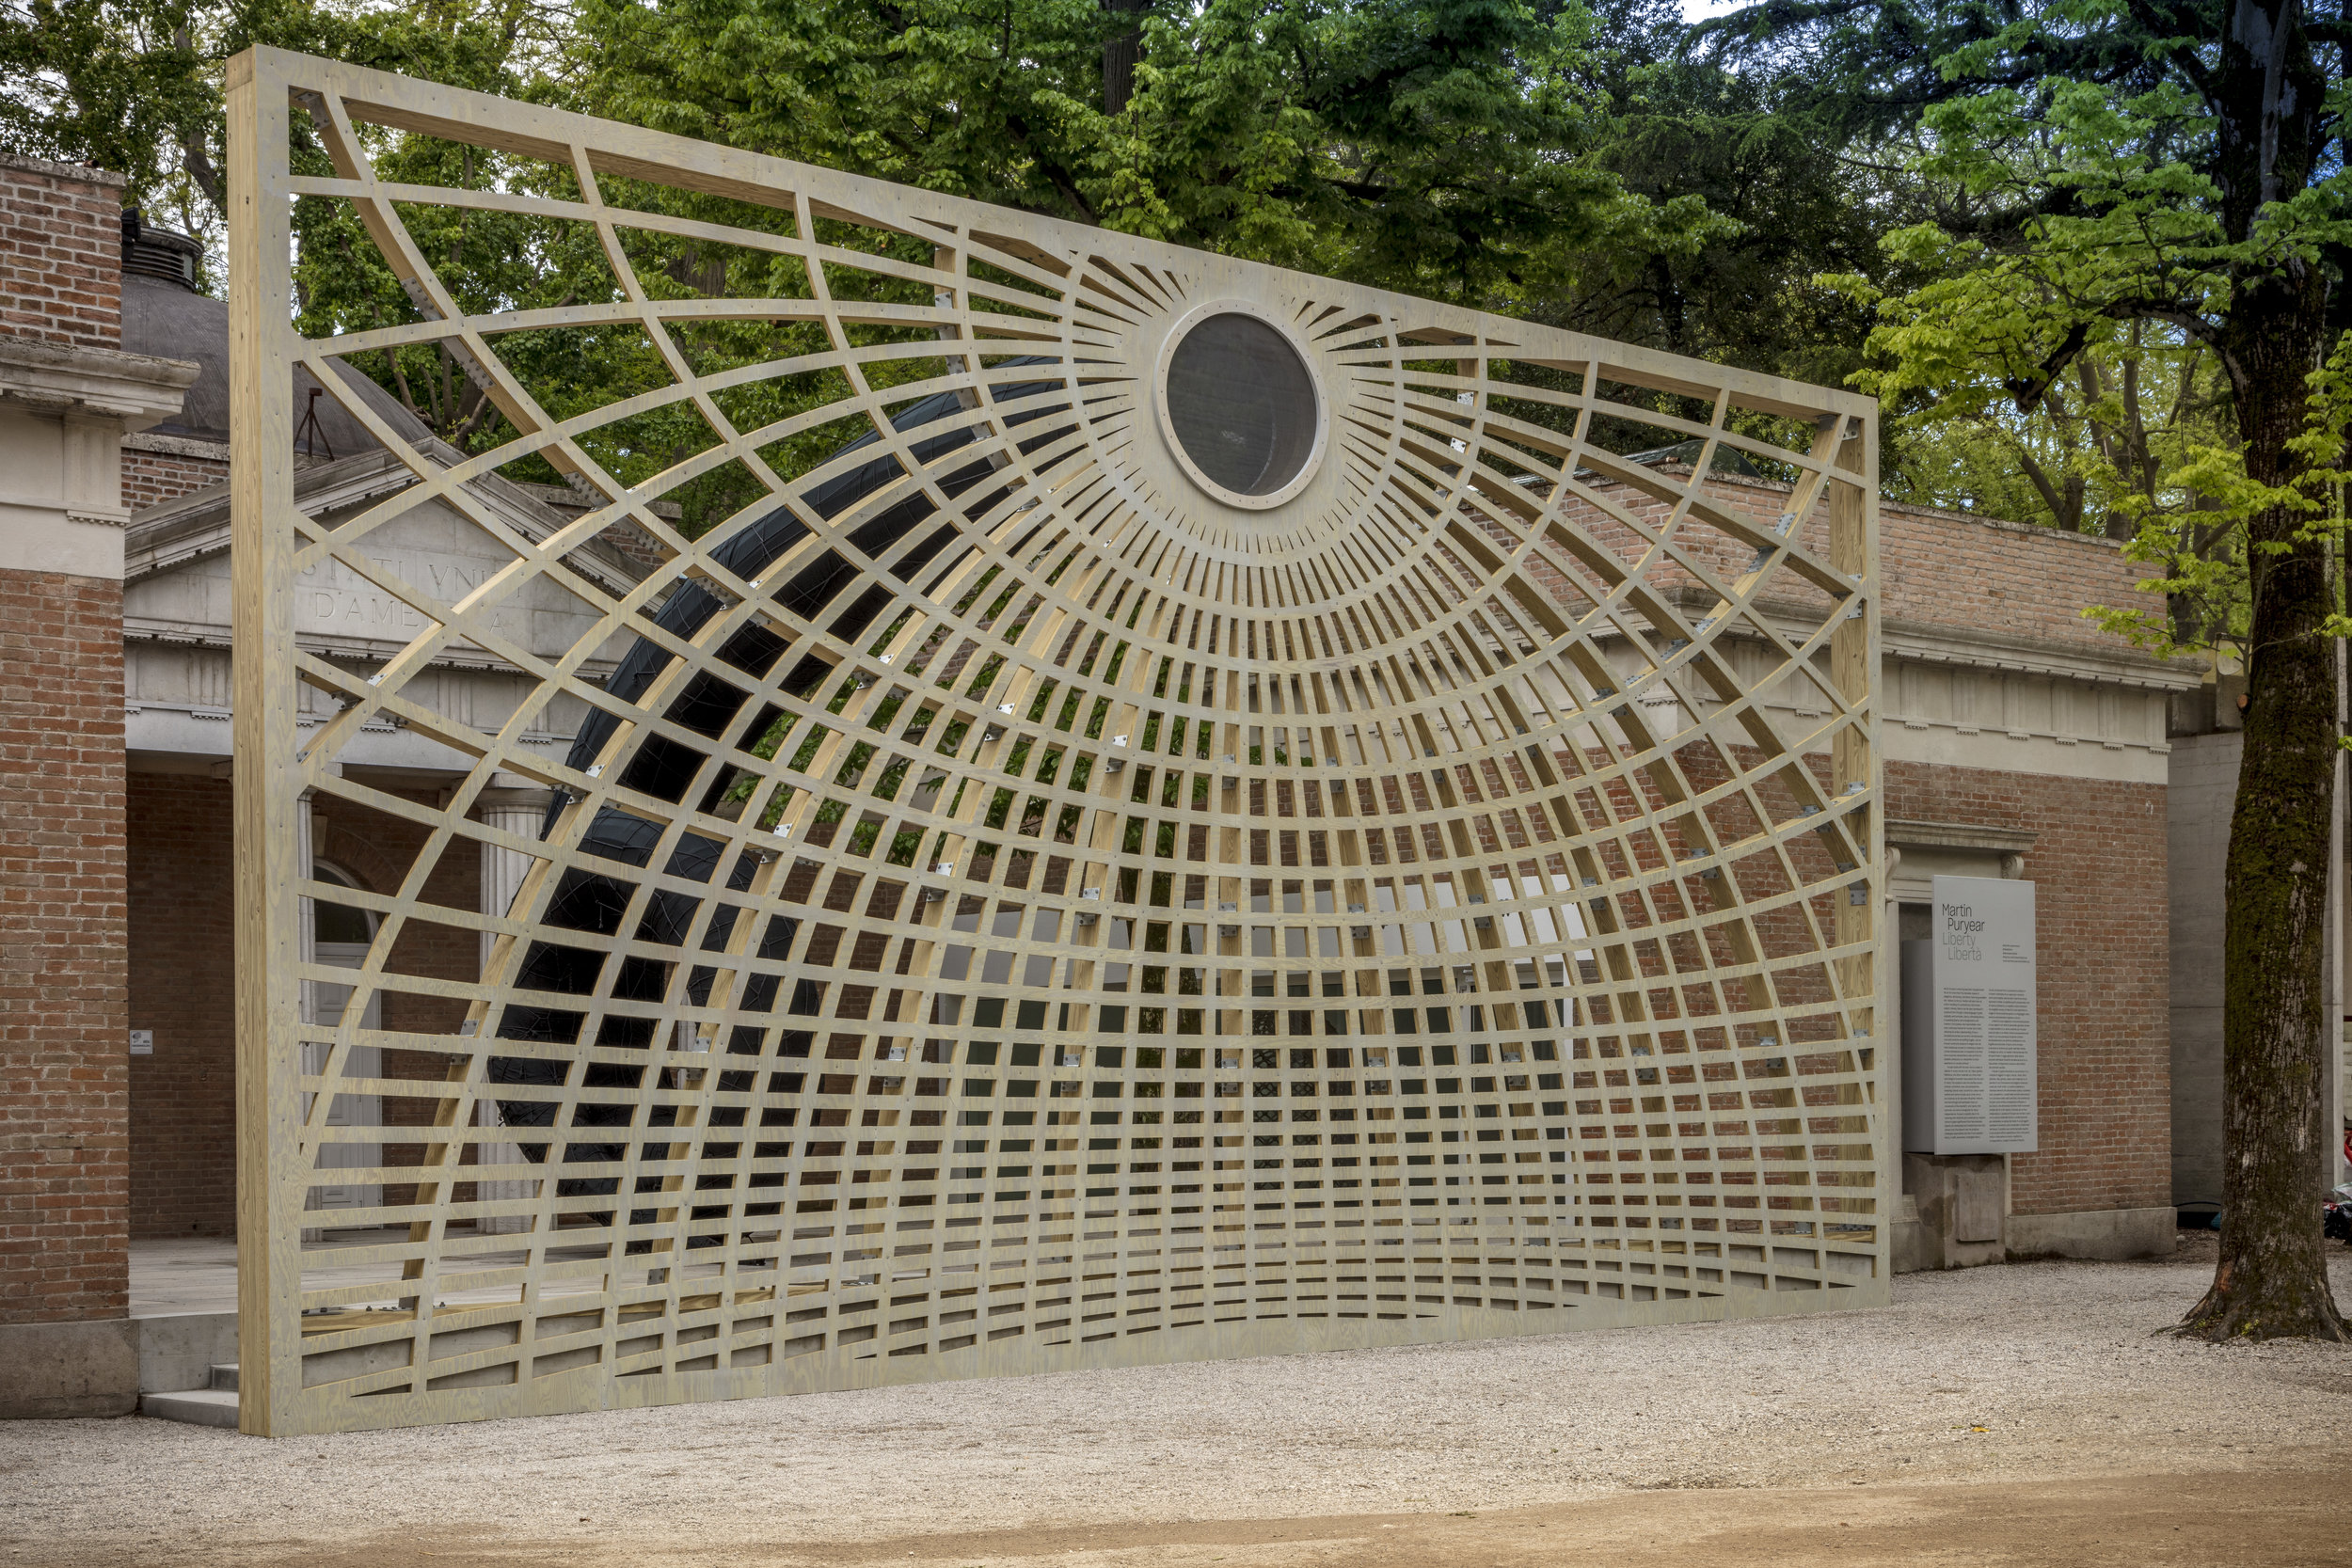 Pavilion of UNITED STATES OF AMERICA, Martin Puryear: Liberty / Libertà. Swallowed Sun (Monstrance and Volute), 2019. Photo: Joshua White